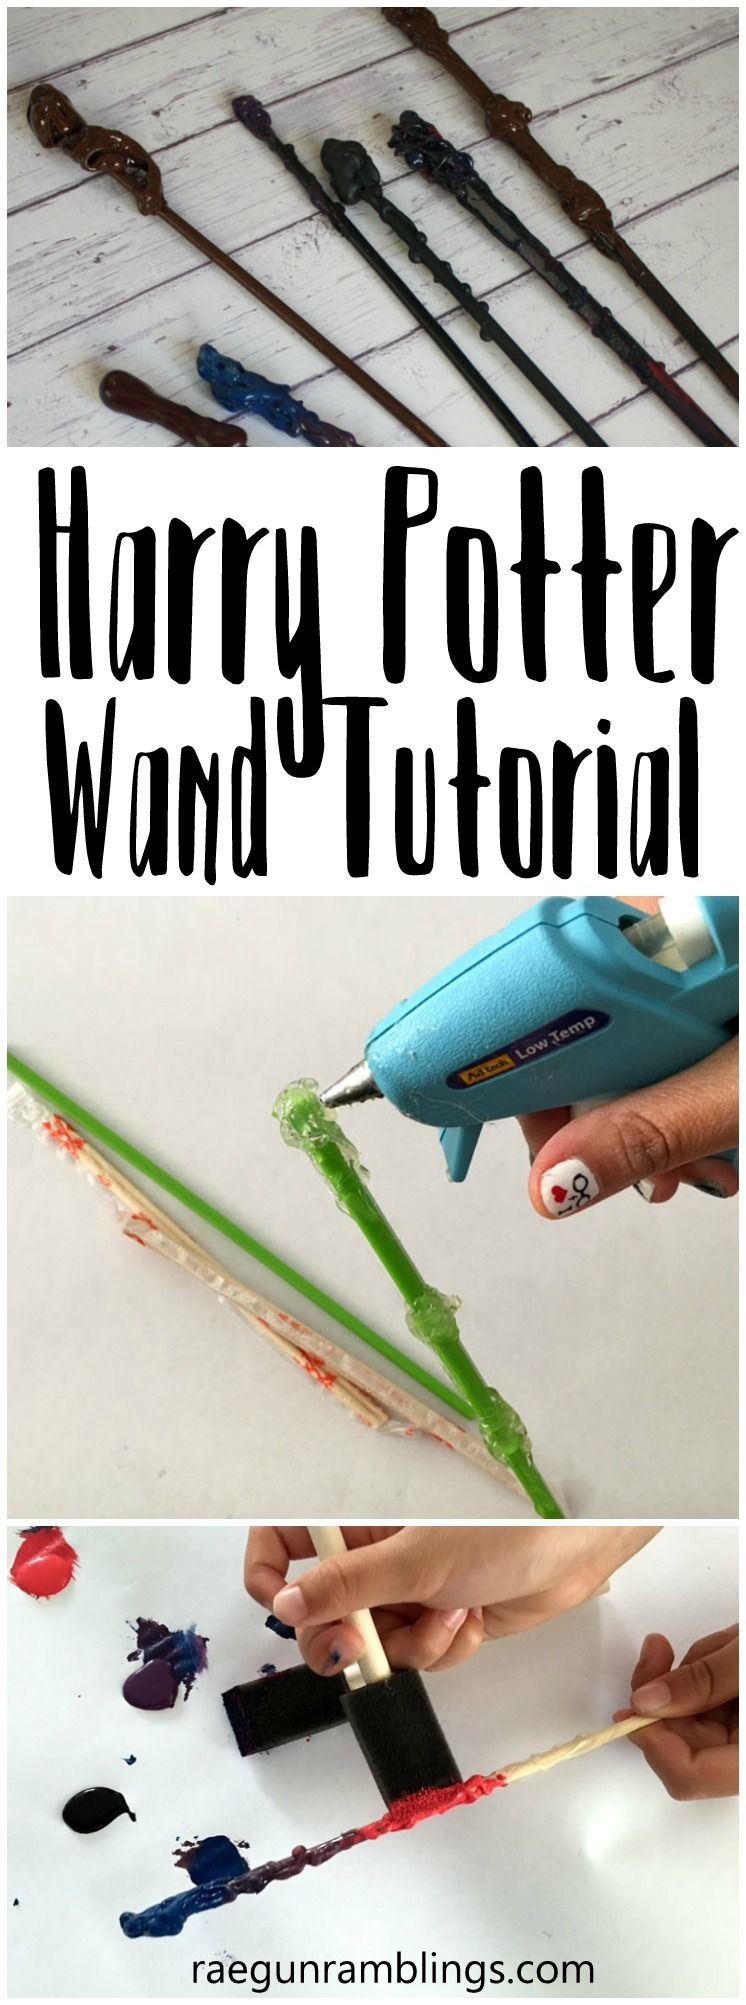 How to Make a Harry Potter Wand Tutorial #bachlorettepartyideas